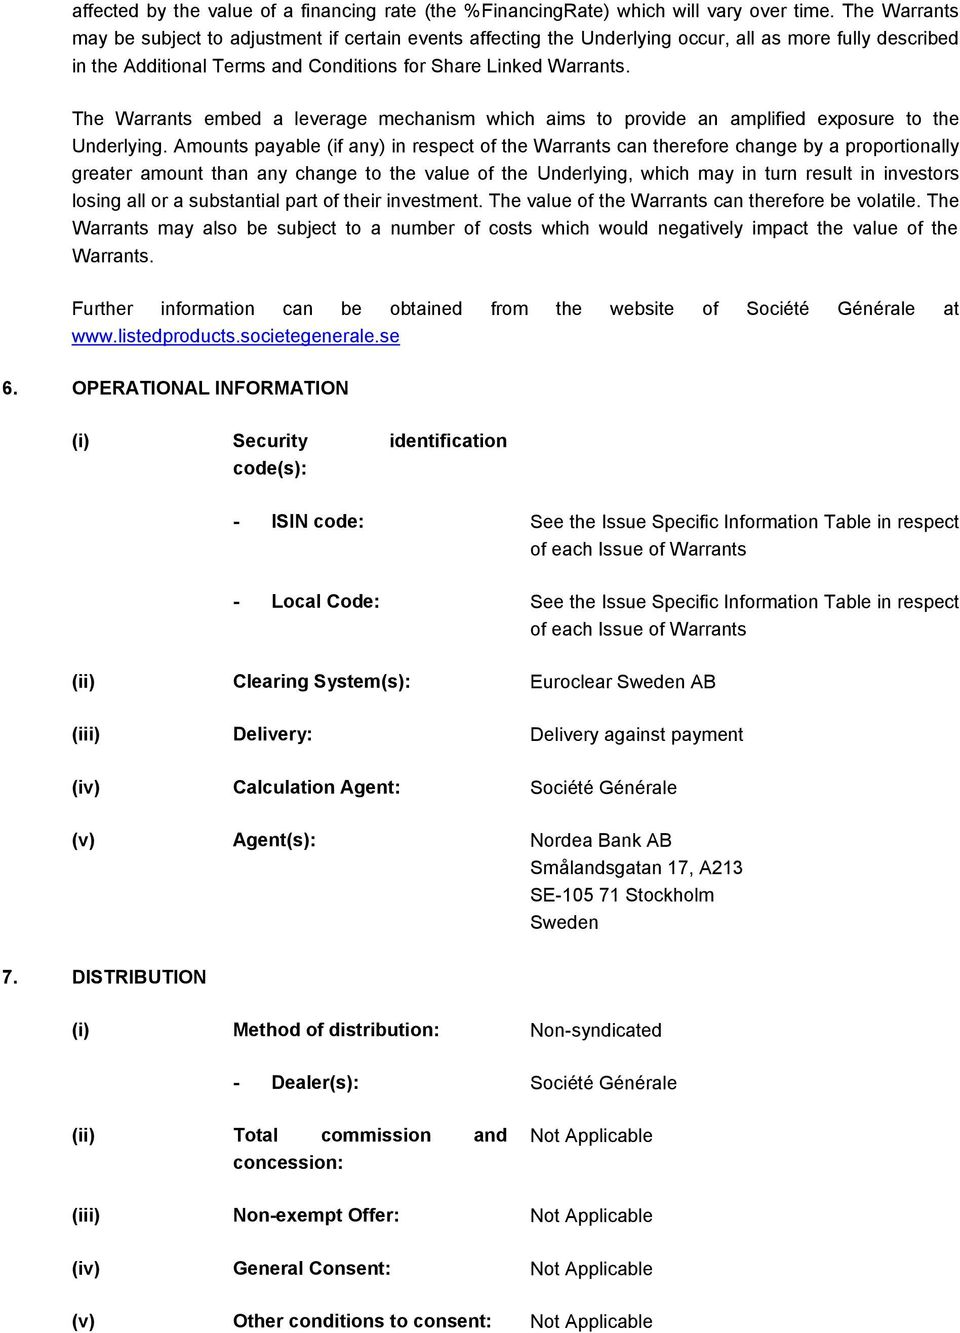 The Warrants embed a leverage mechanism which aims to provide an amplified exposure to the Underlying.